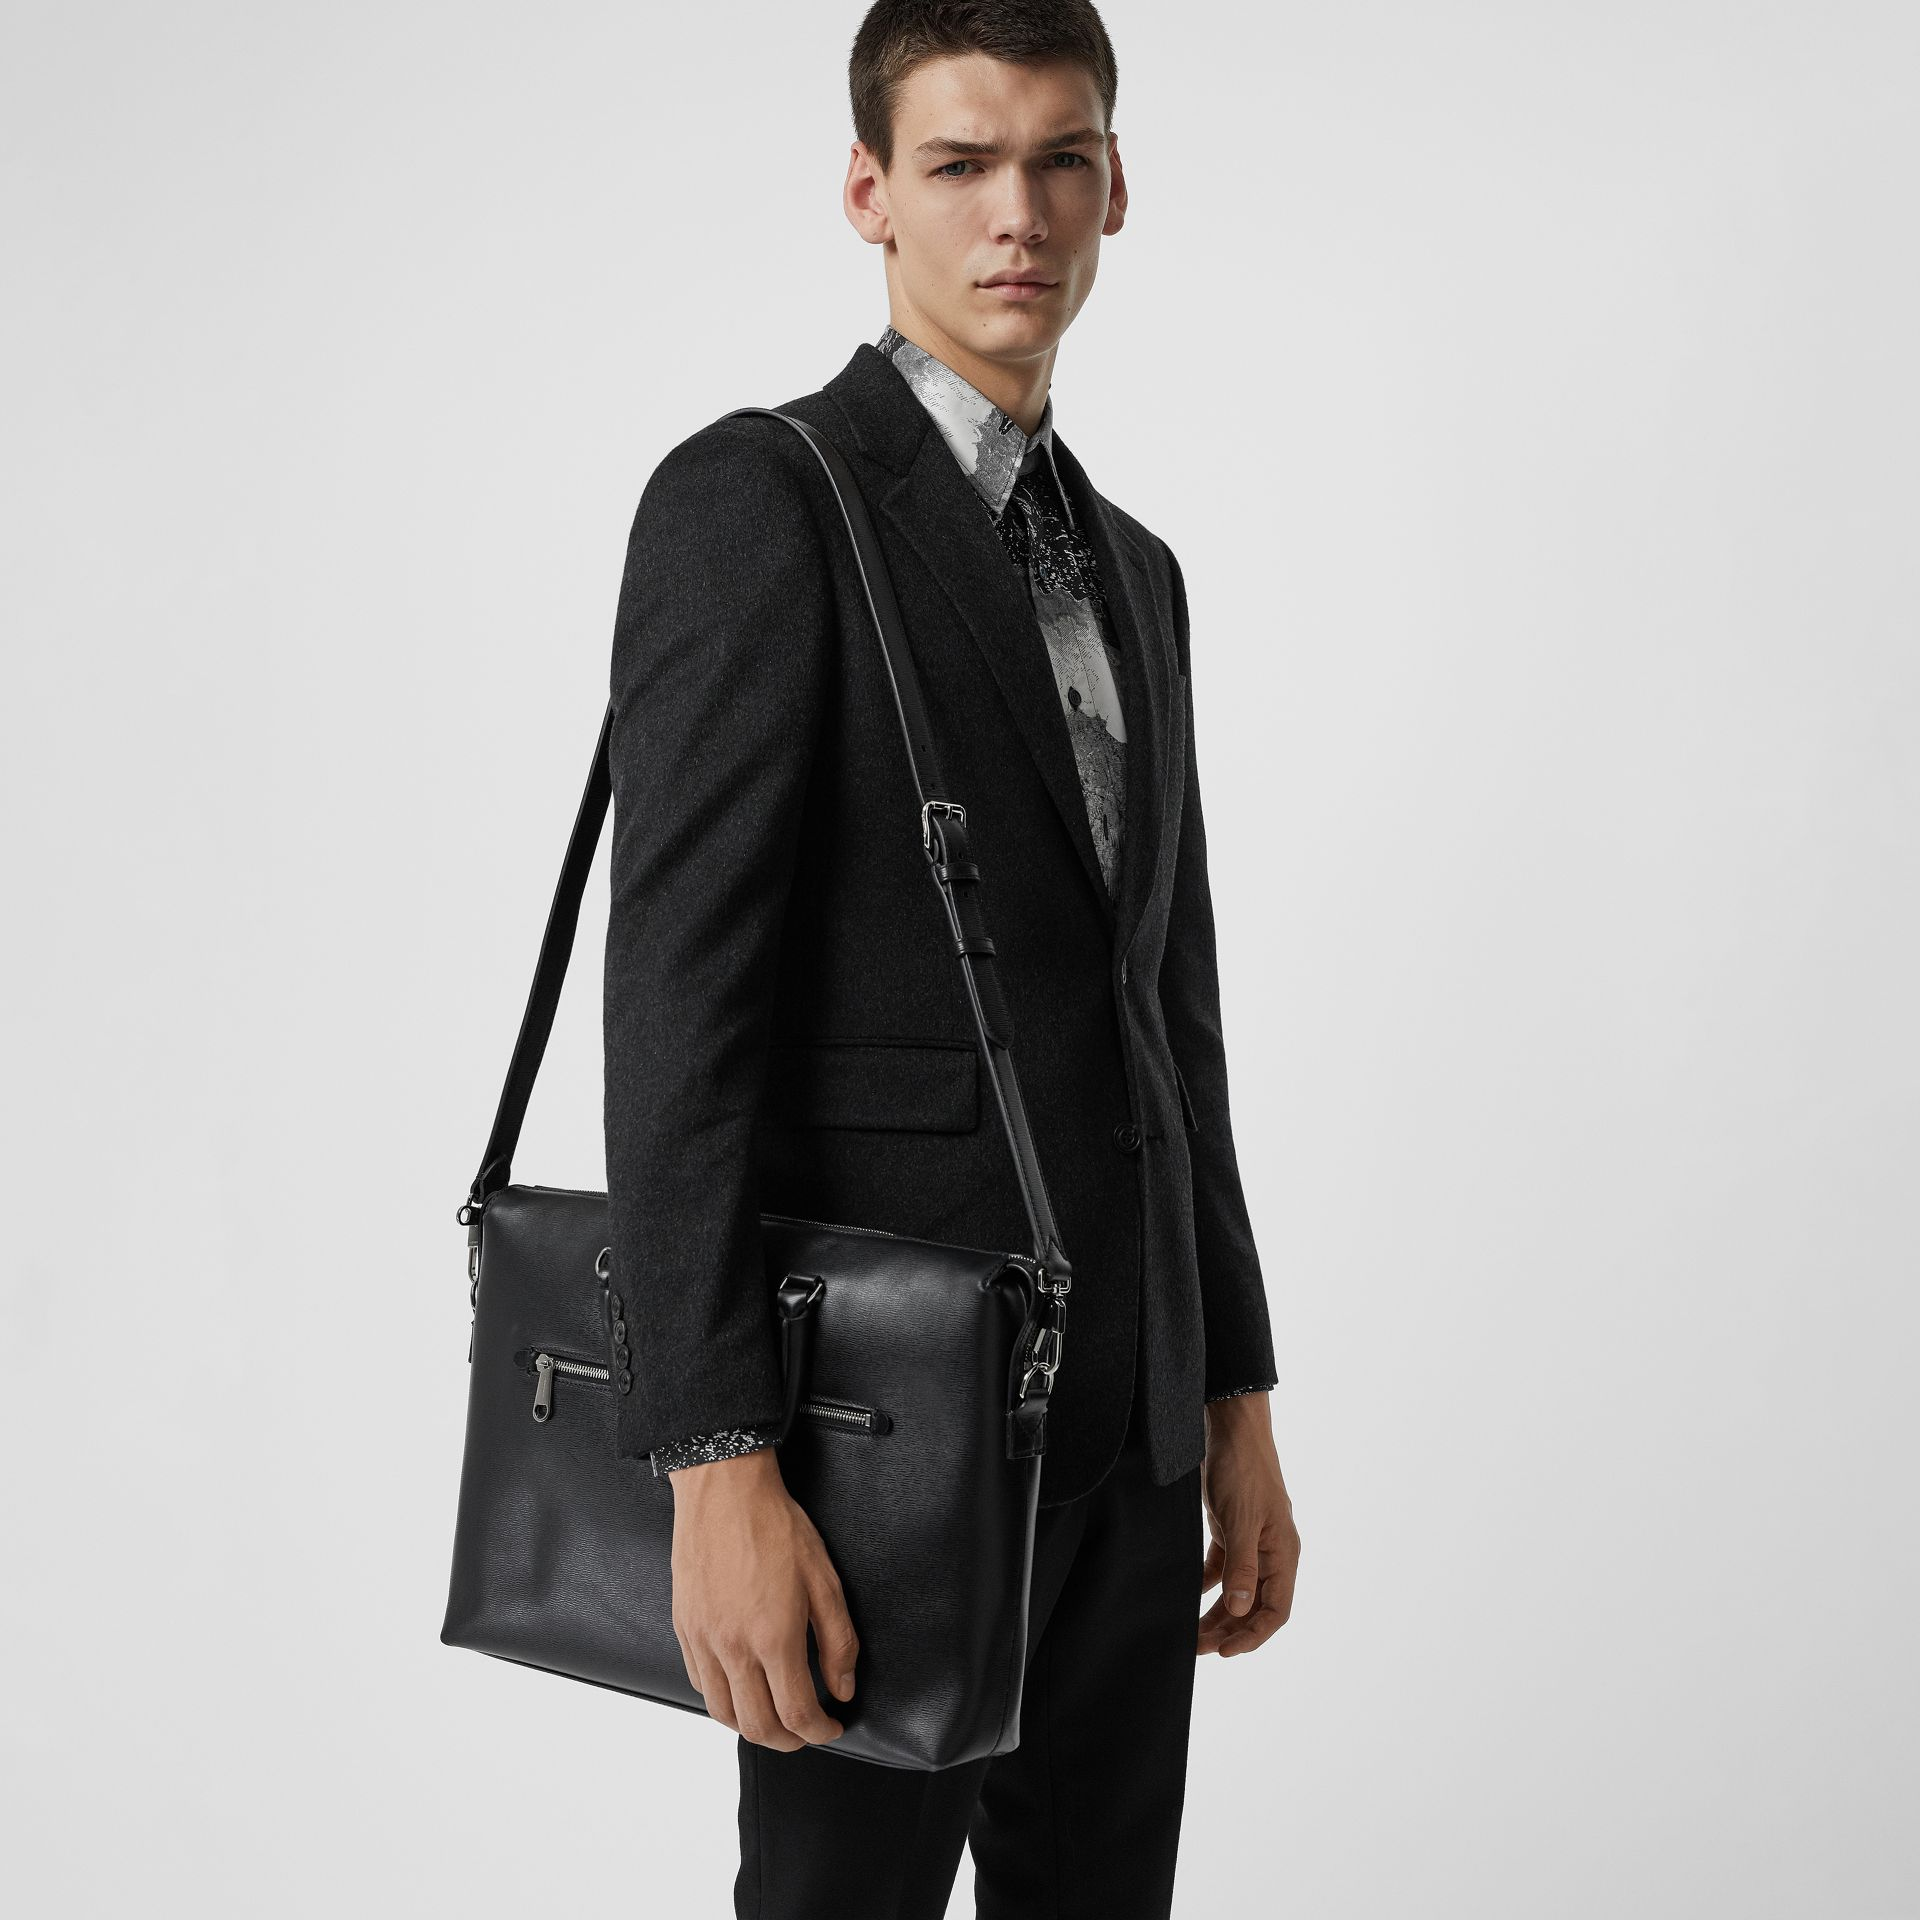 Large Textured Leather Briefcase in Black - Men | Burberry Australia - gallery image 3